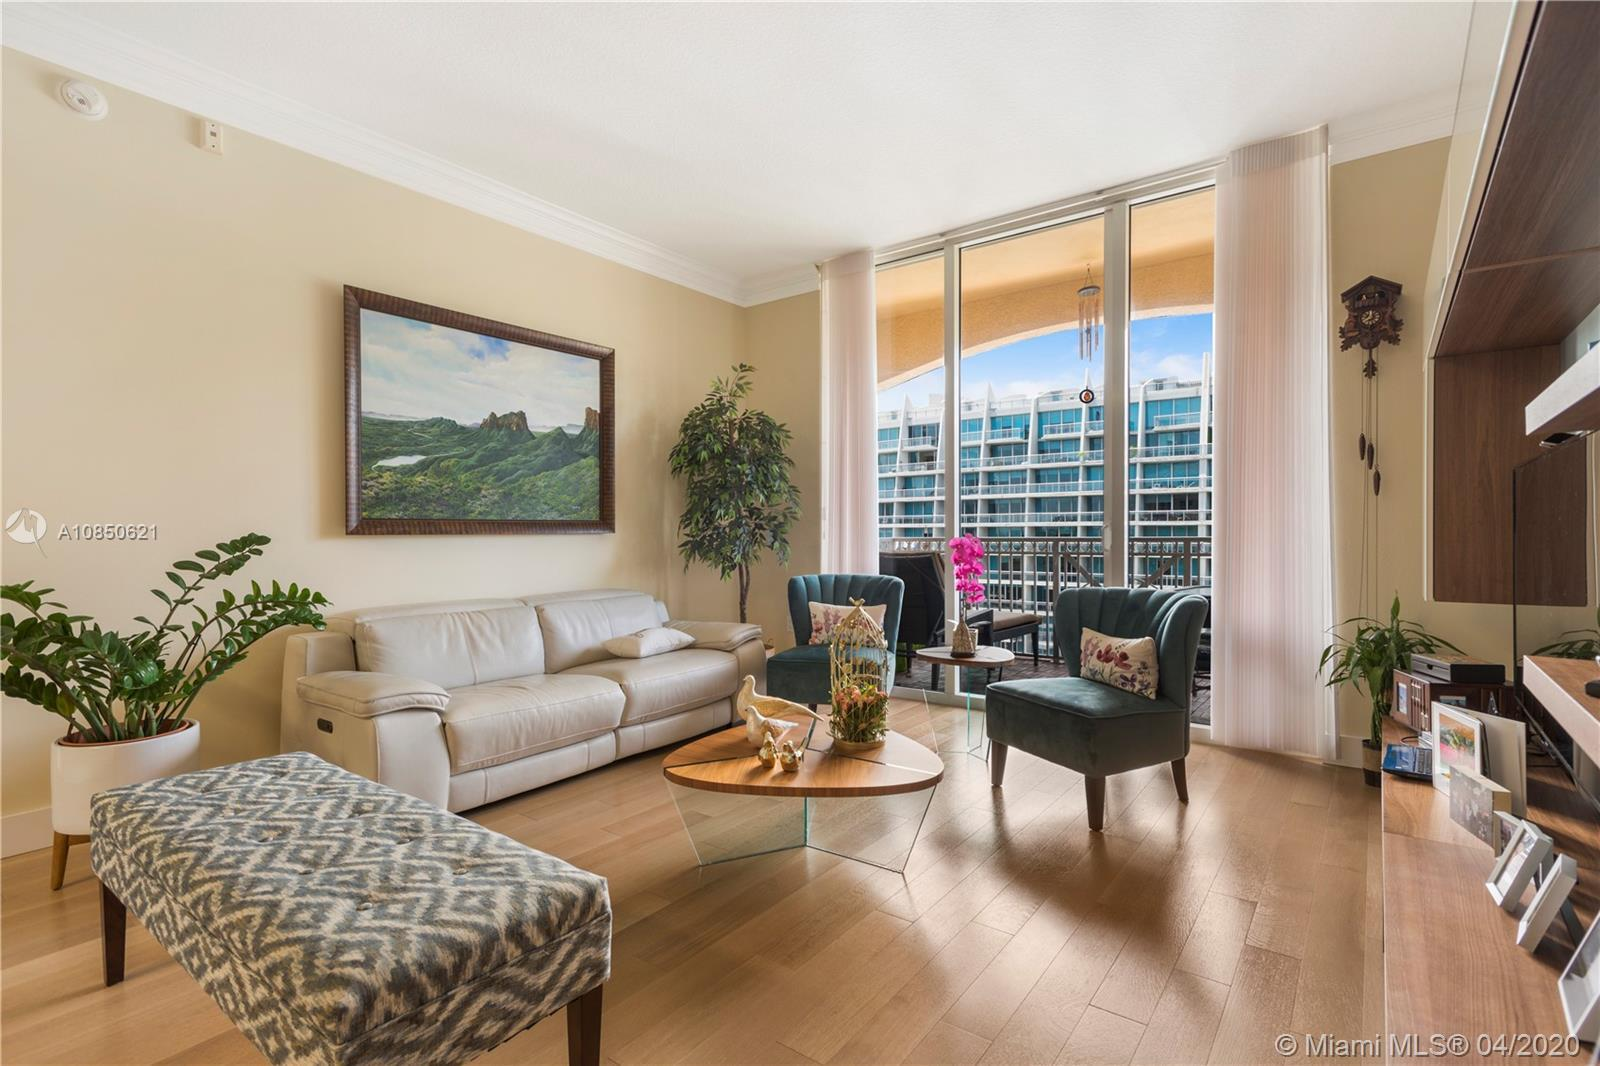 BEAUTIFUL AND COMPLETELY REMODELED TWO BEDROOM AND TWO BATHROOM UNIT AT ALAQUA. OPEN KITCHEN WITH S